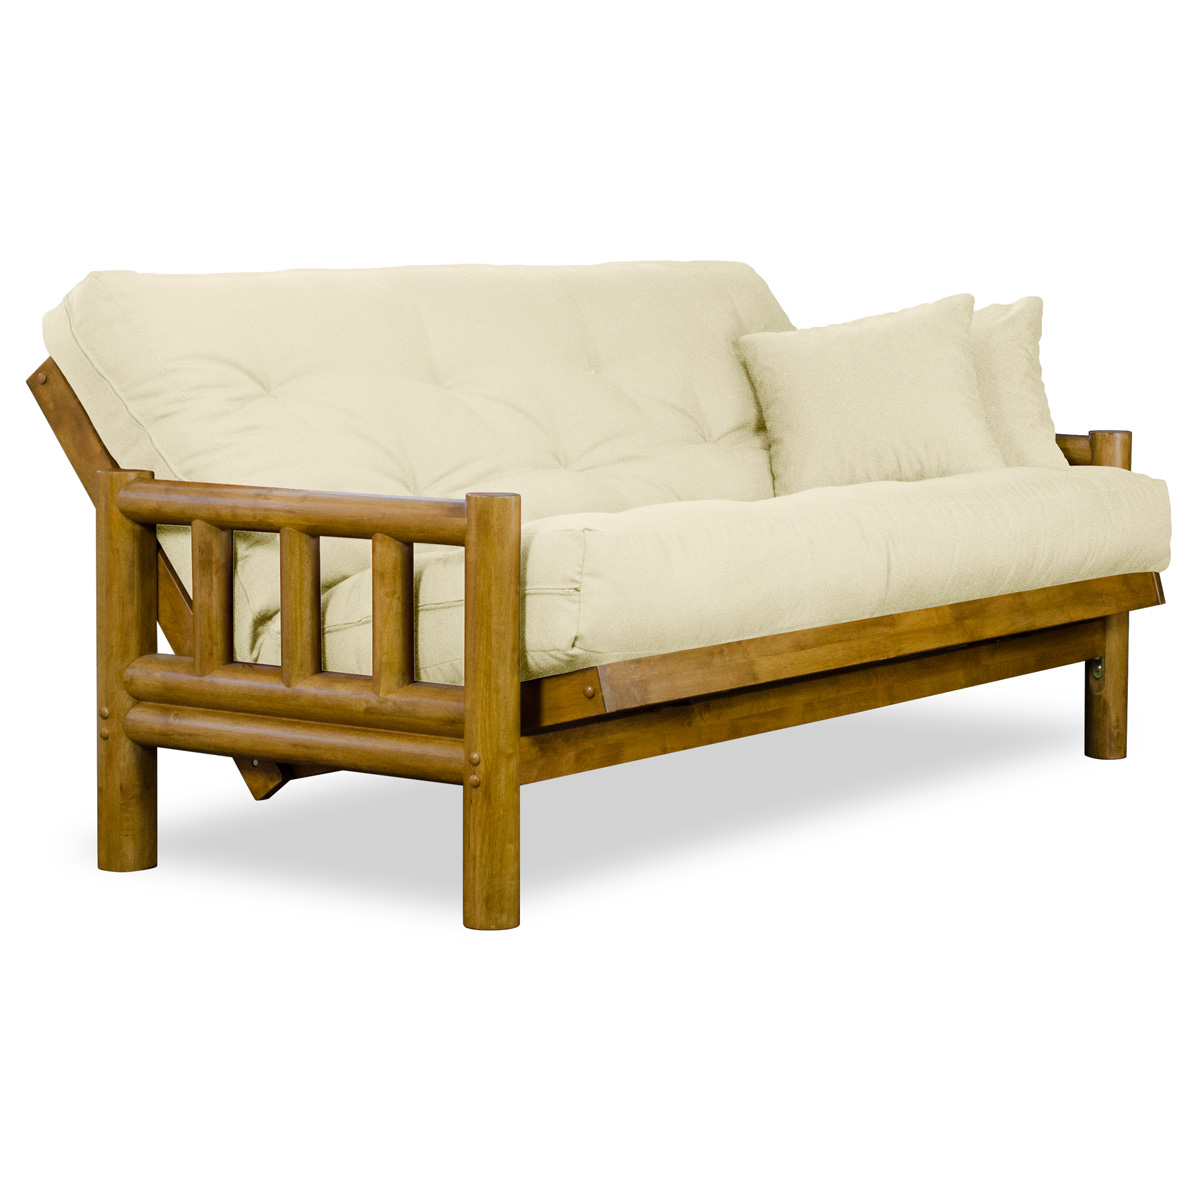 Tahoe Log Futon Frame and Mattress Set - Heritage Finish - NF-TLOG-SET#